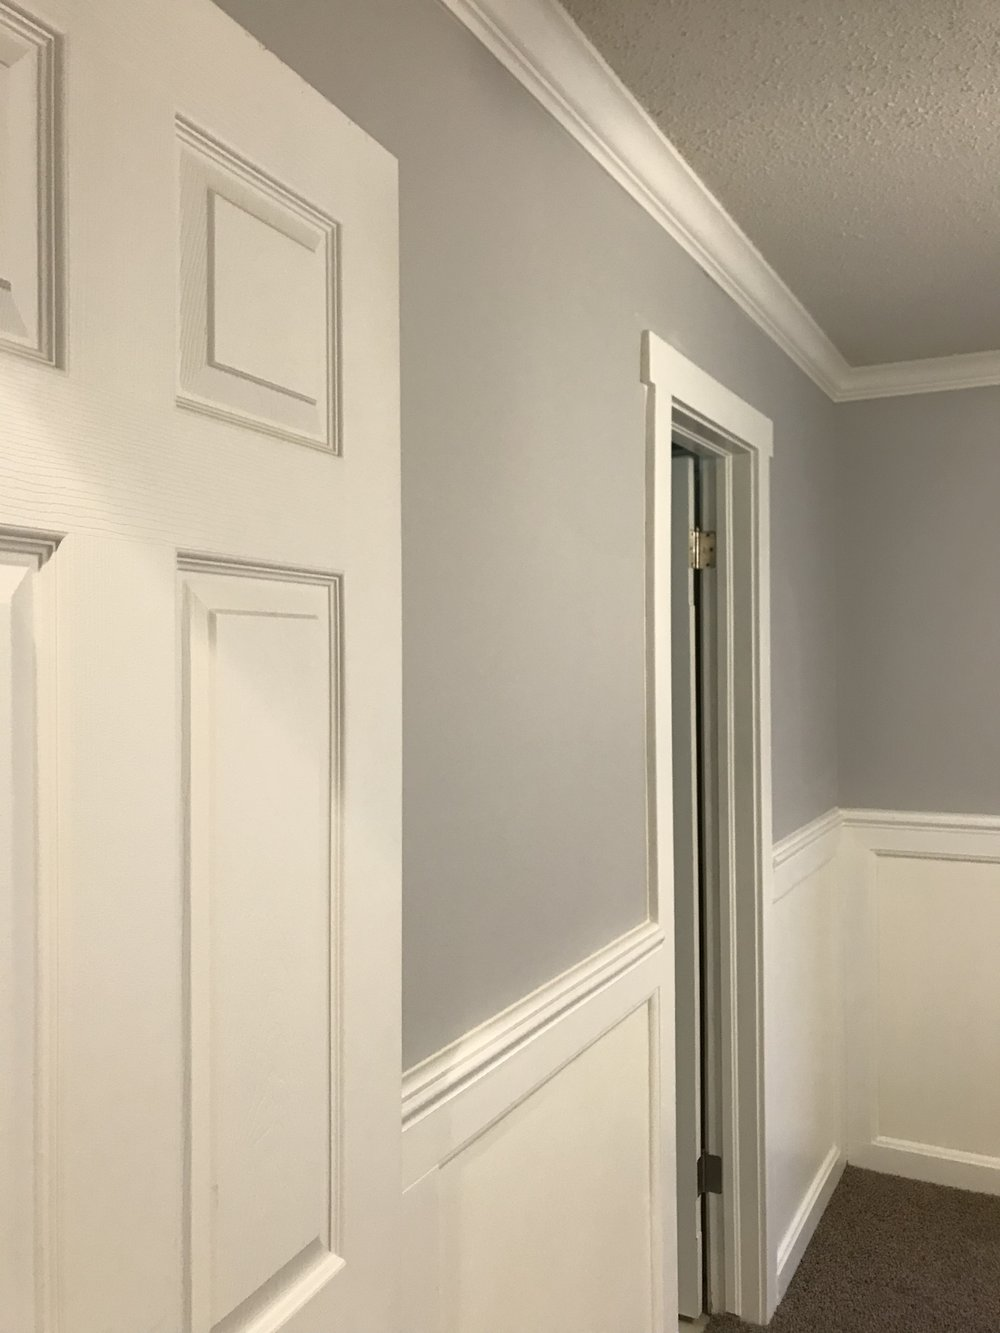 Paint - Any paint needs you might need, we are ready to give your home a new look. Painting is by far the best way for your room to make a statement. It's quick, simple, and will give you the best value for your remodel.